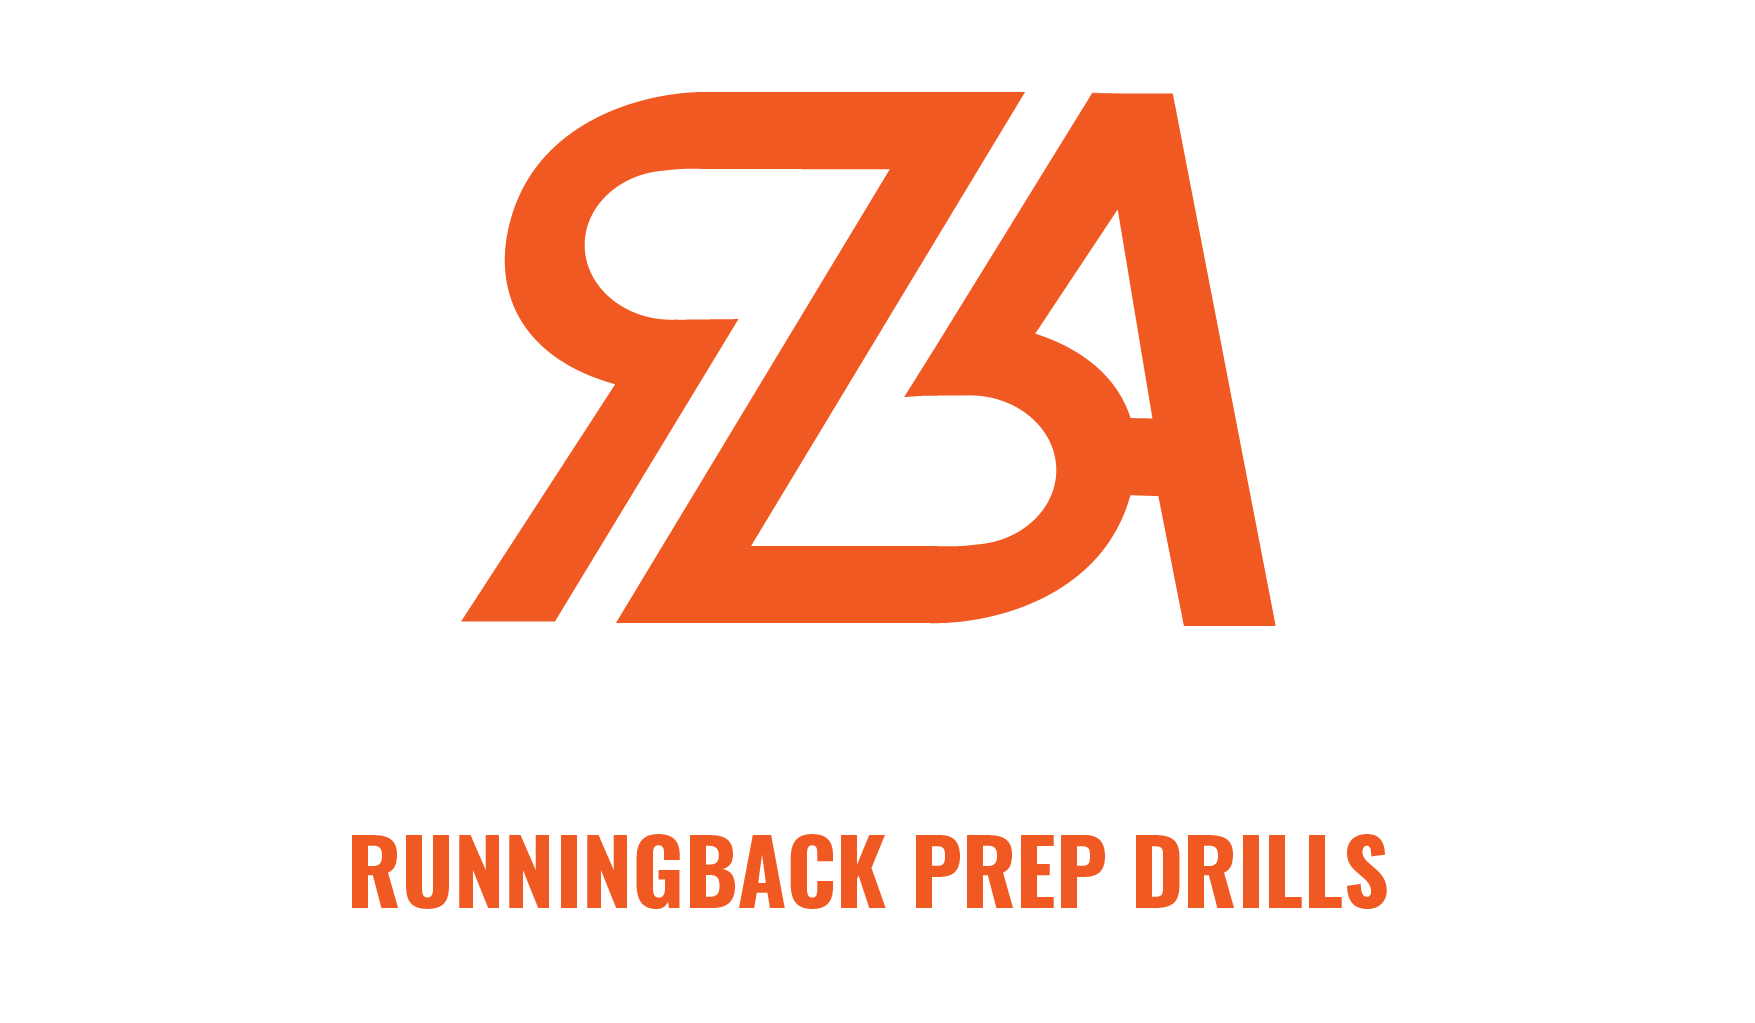 Running_back_academy [Recovered]-08